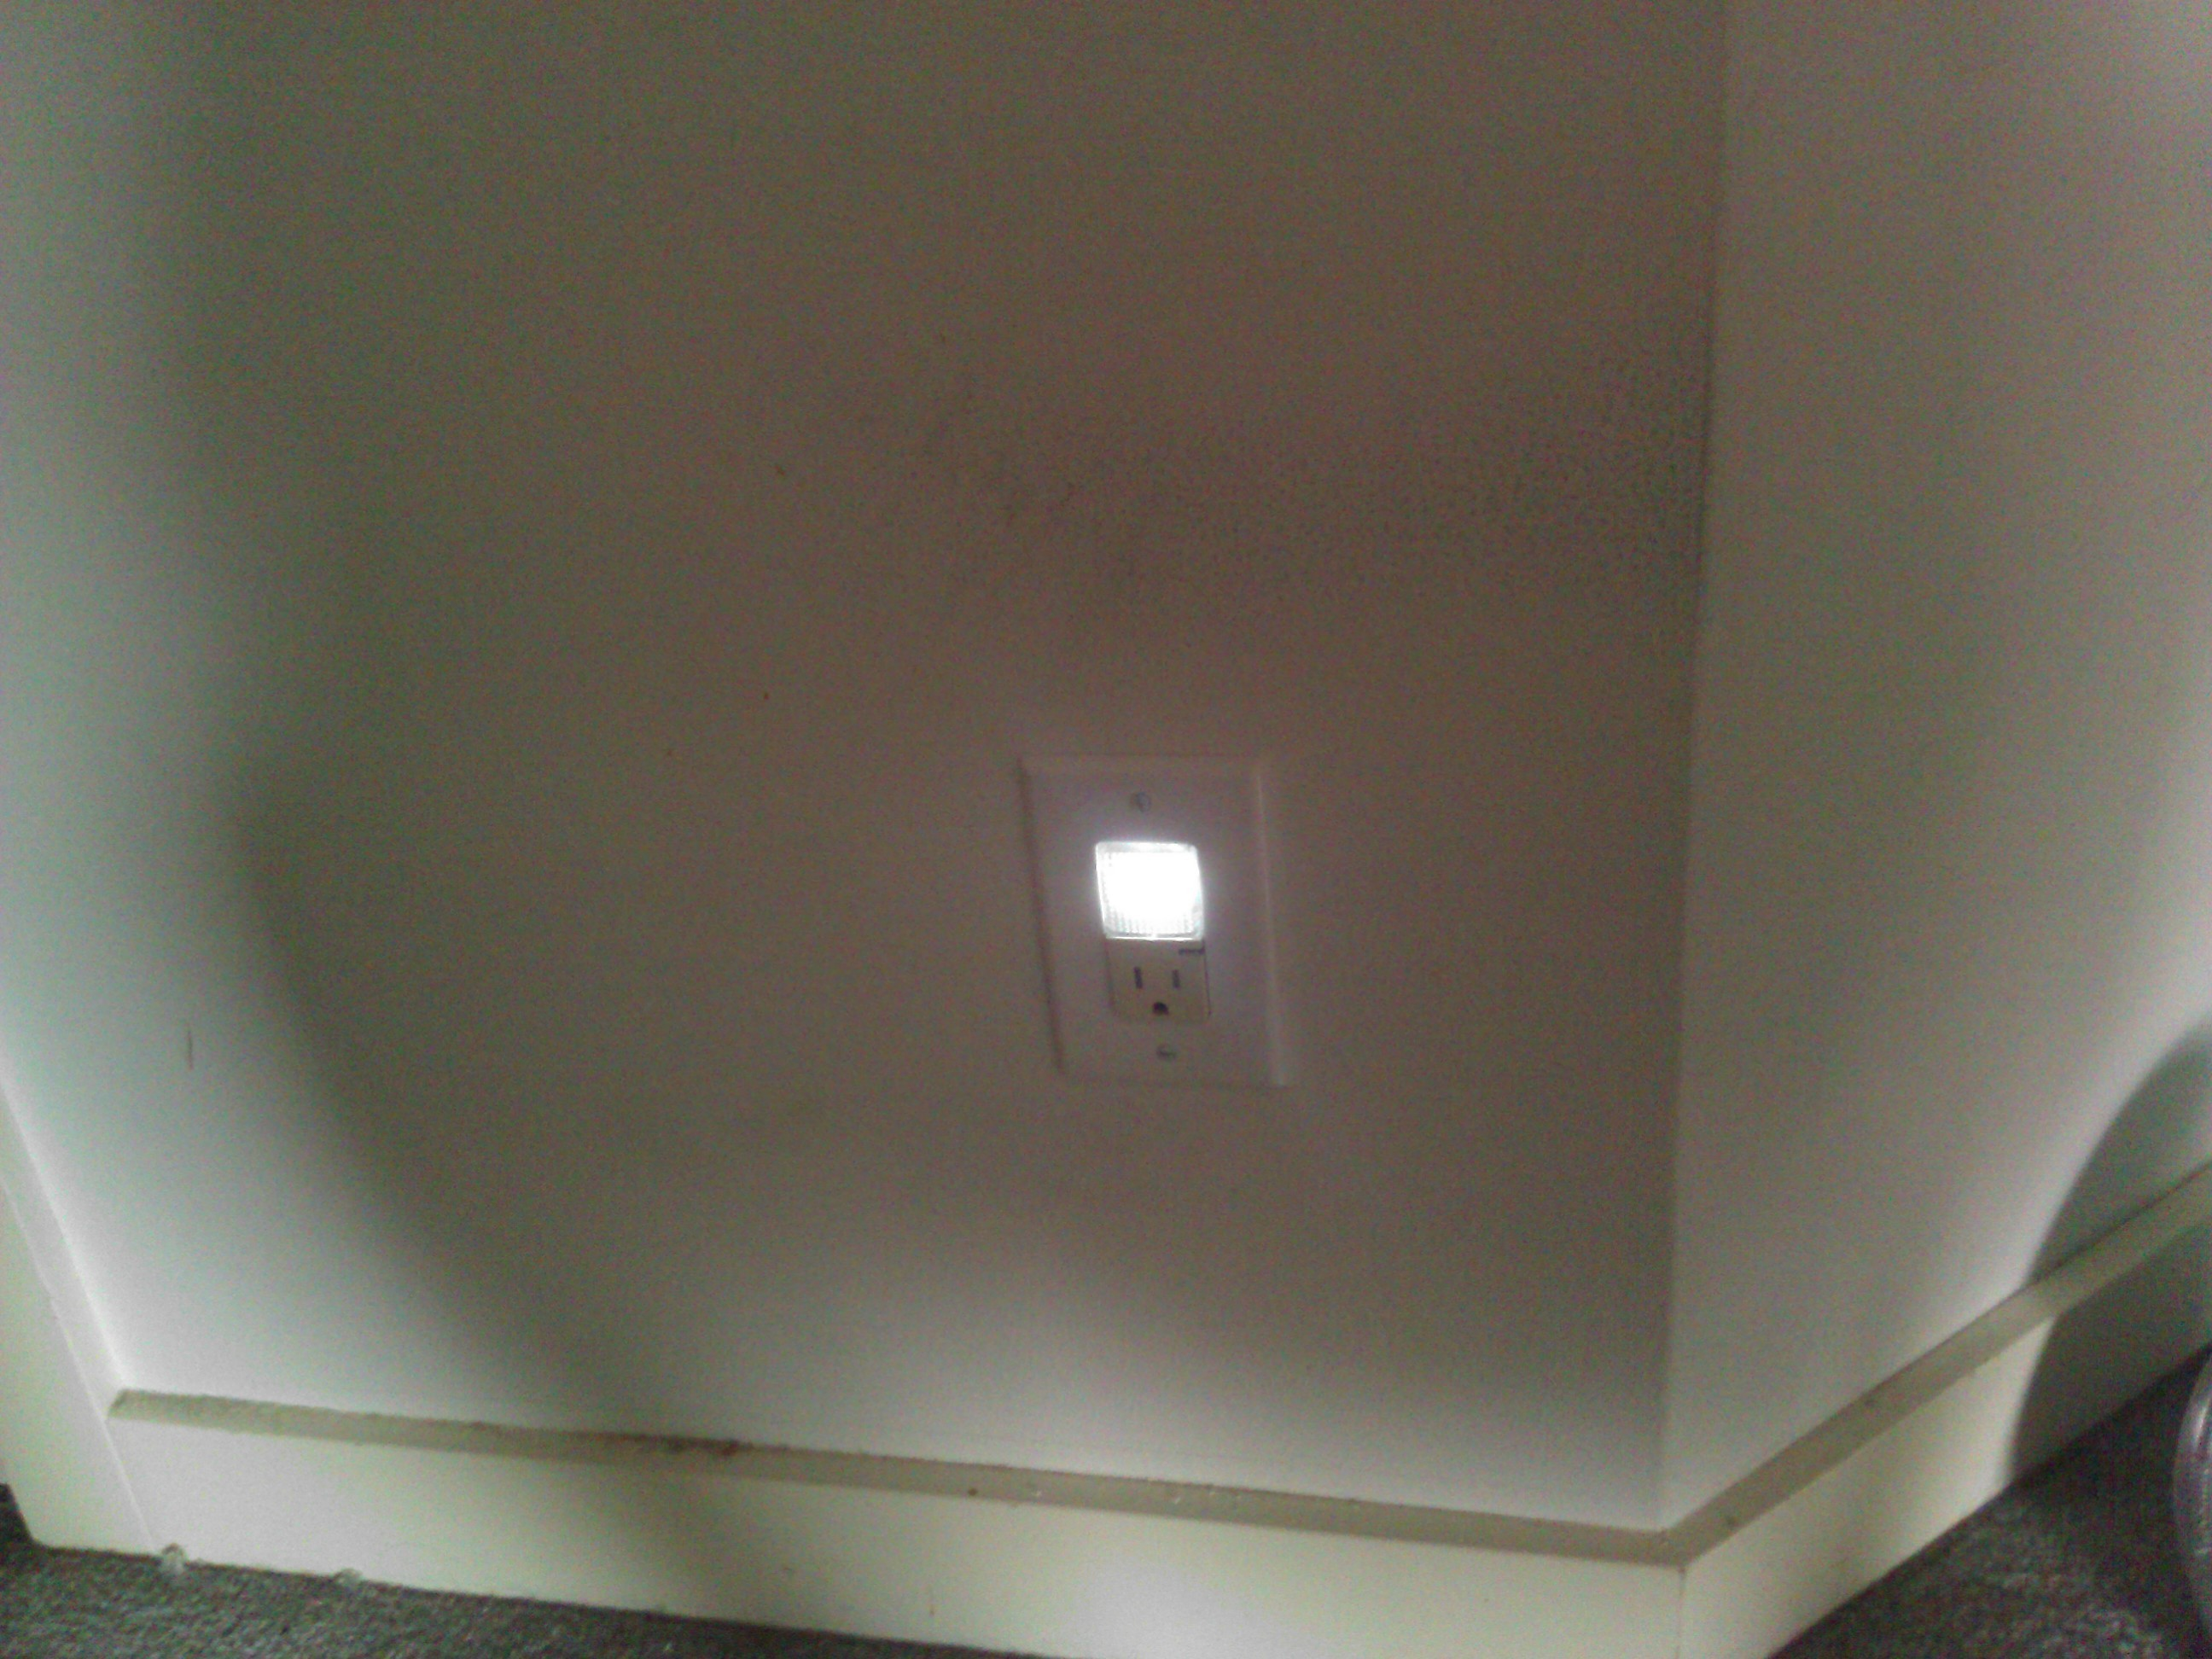 A little home automation hallway night lights homedatacenter not oriented yet finished socket aloadofball Choice Image